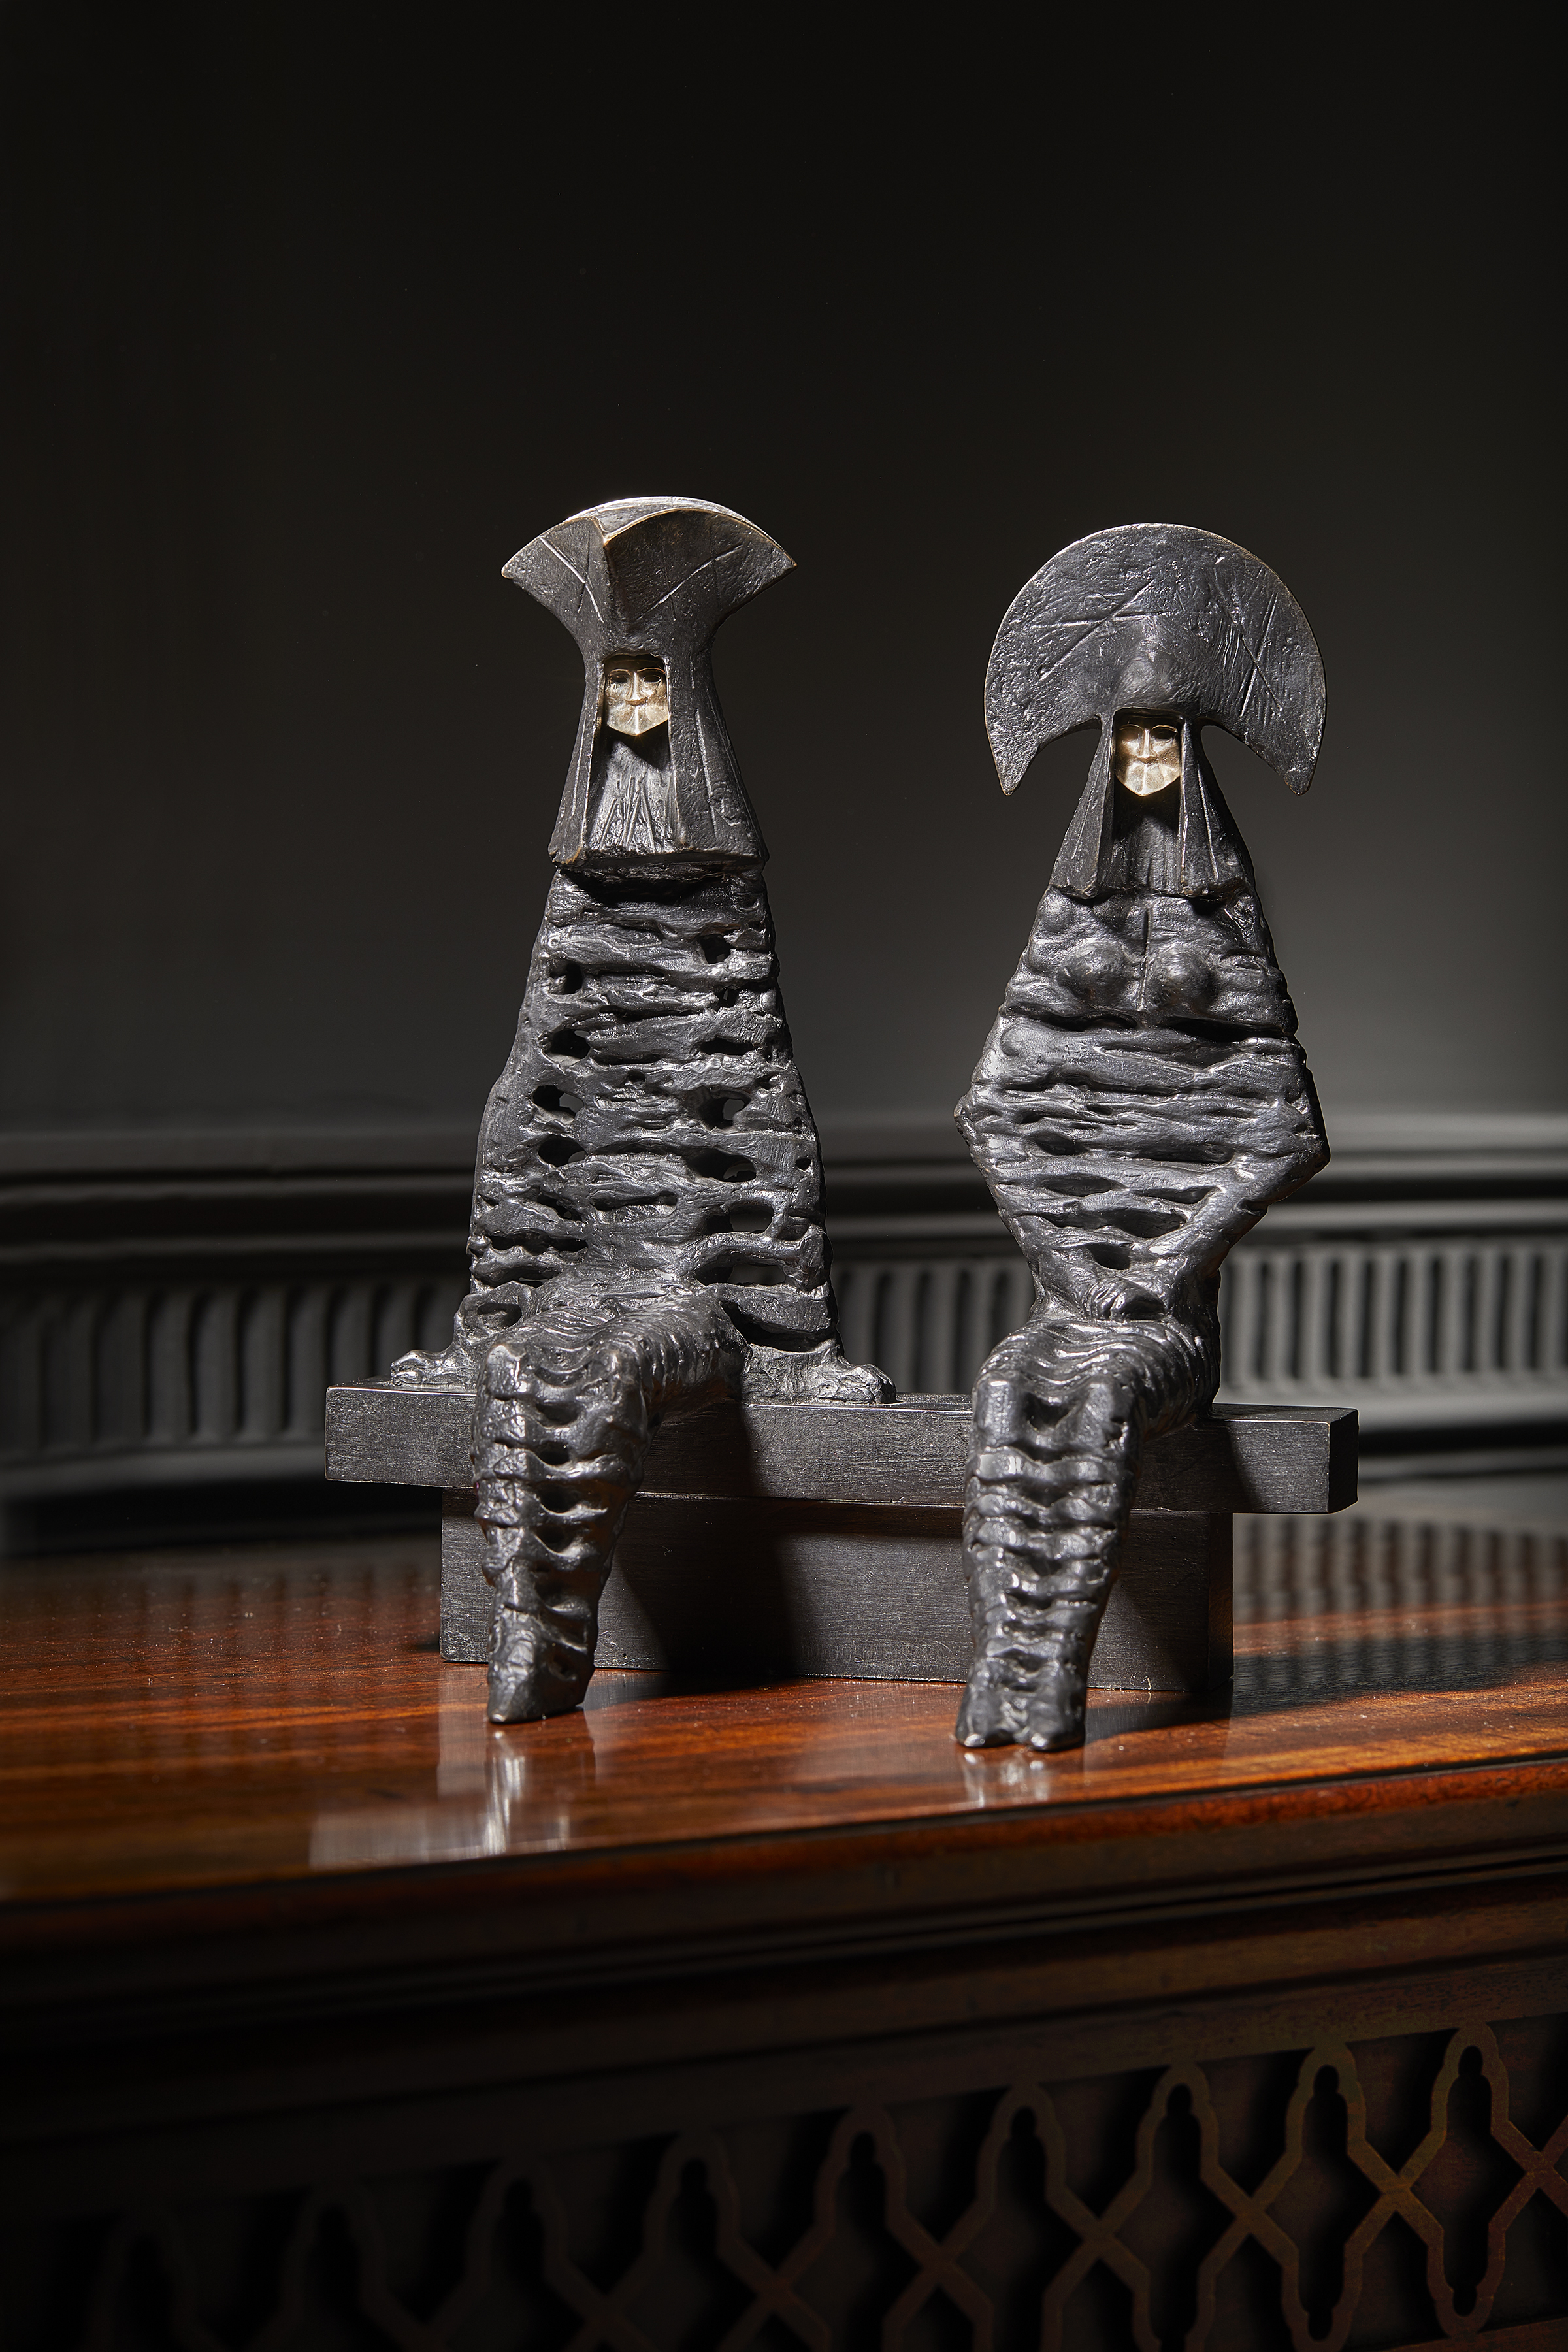 Behind the Mask by Philip Jackson